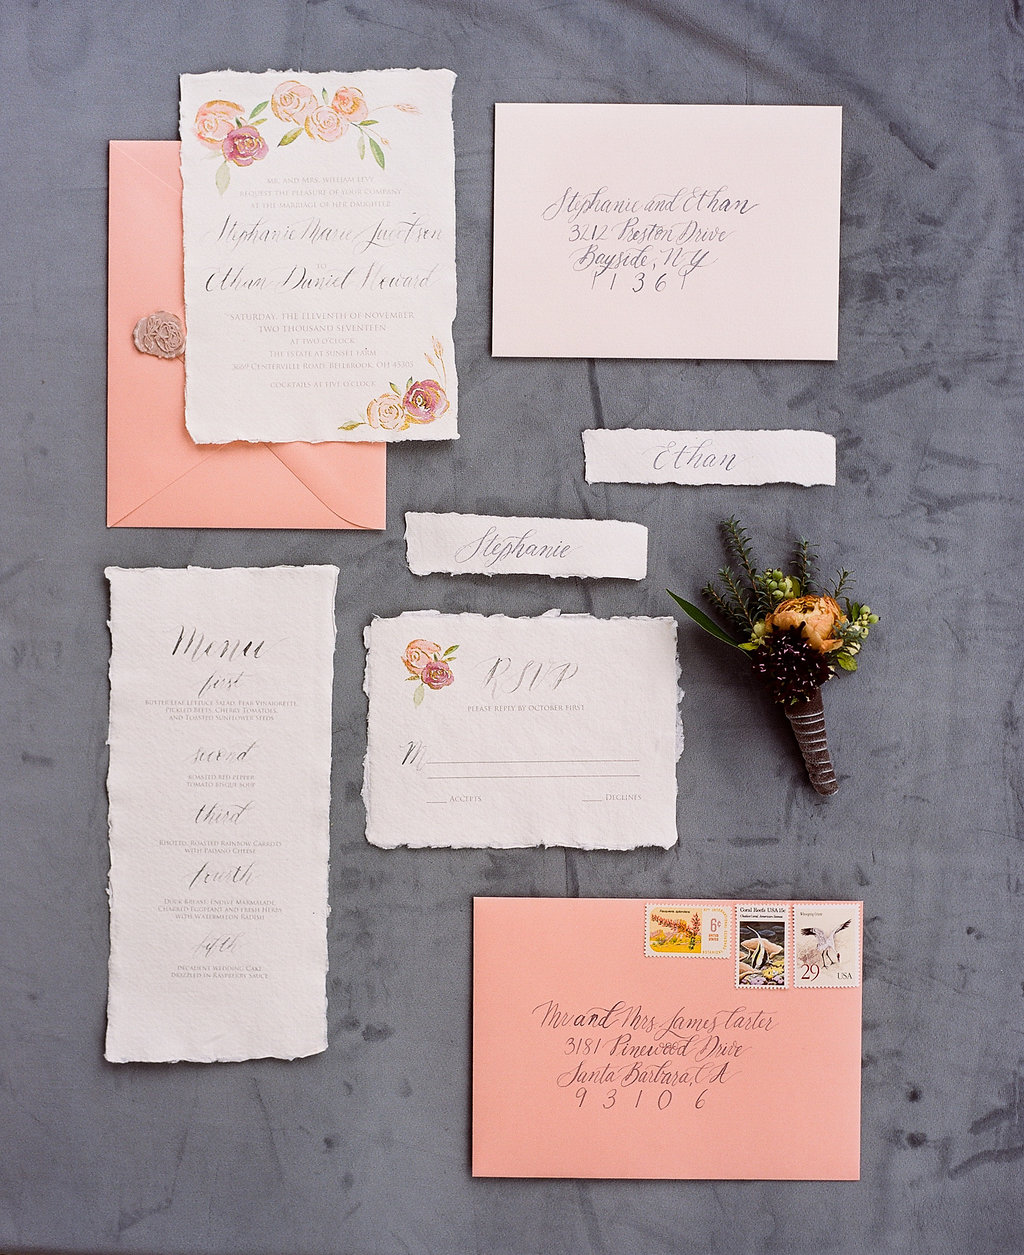 samantha-joy-events-wedding-planner-estate-at-sunset-farms-fall-wedding-invitation-5